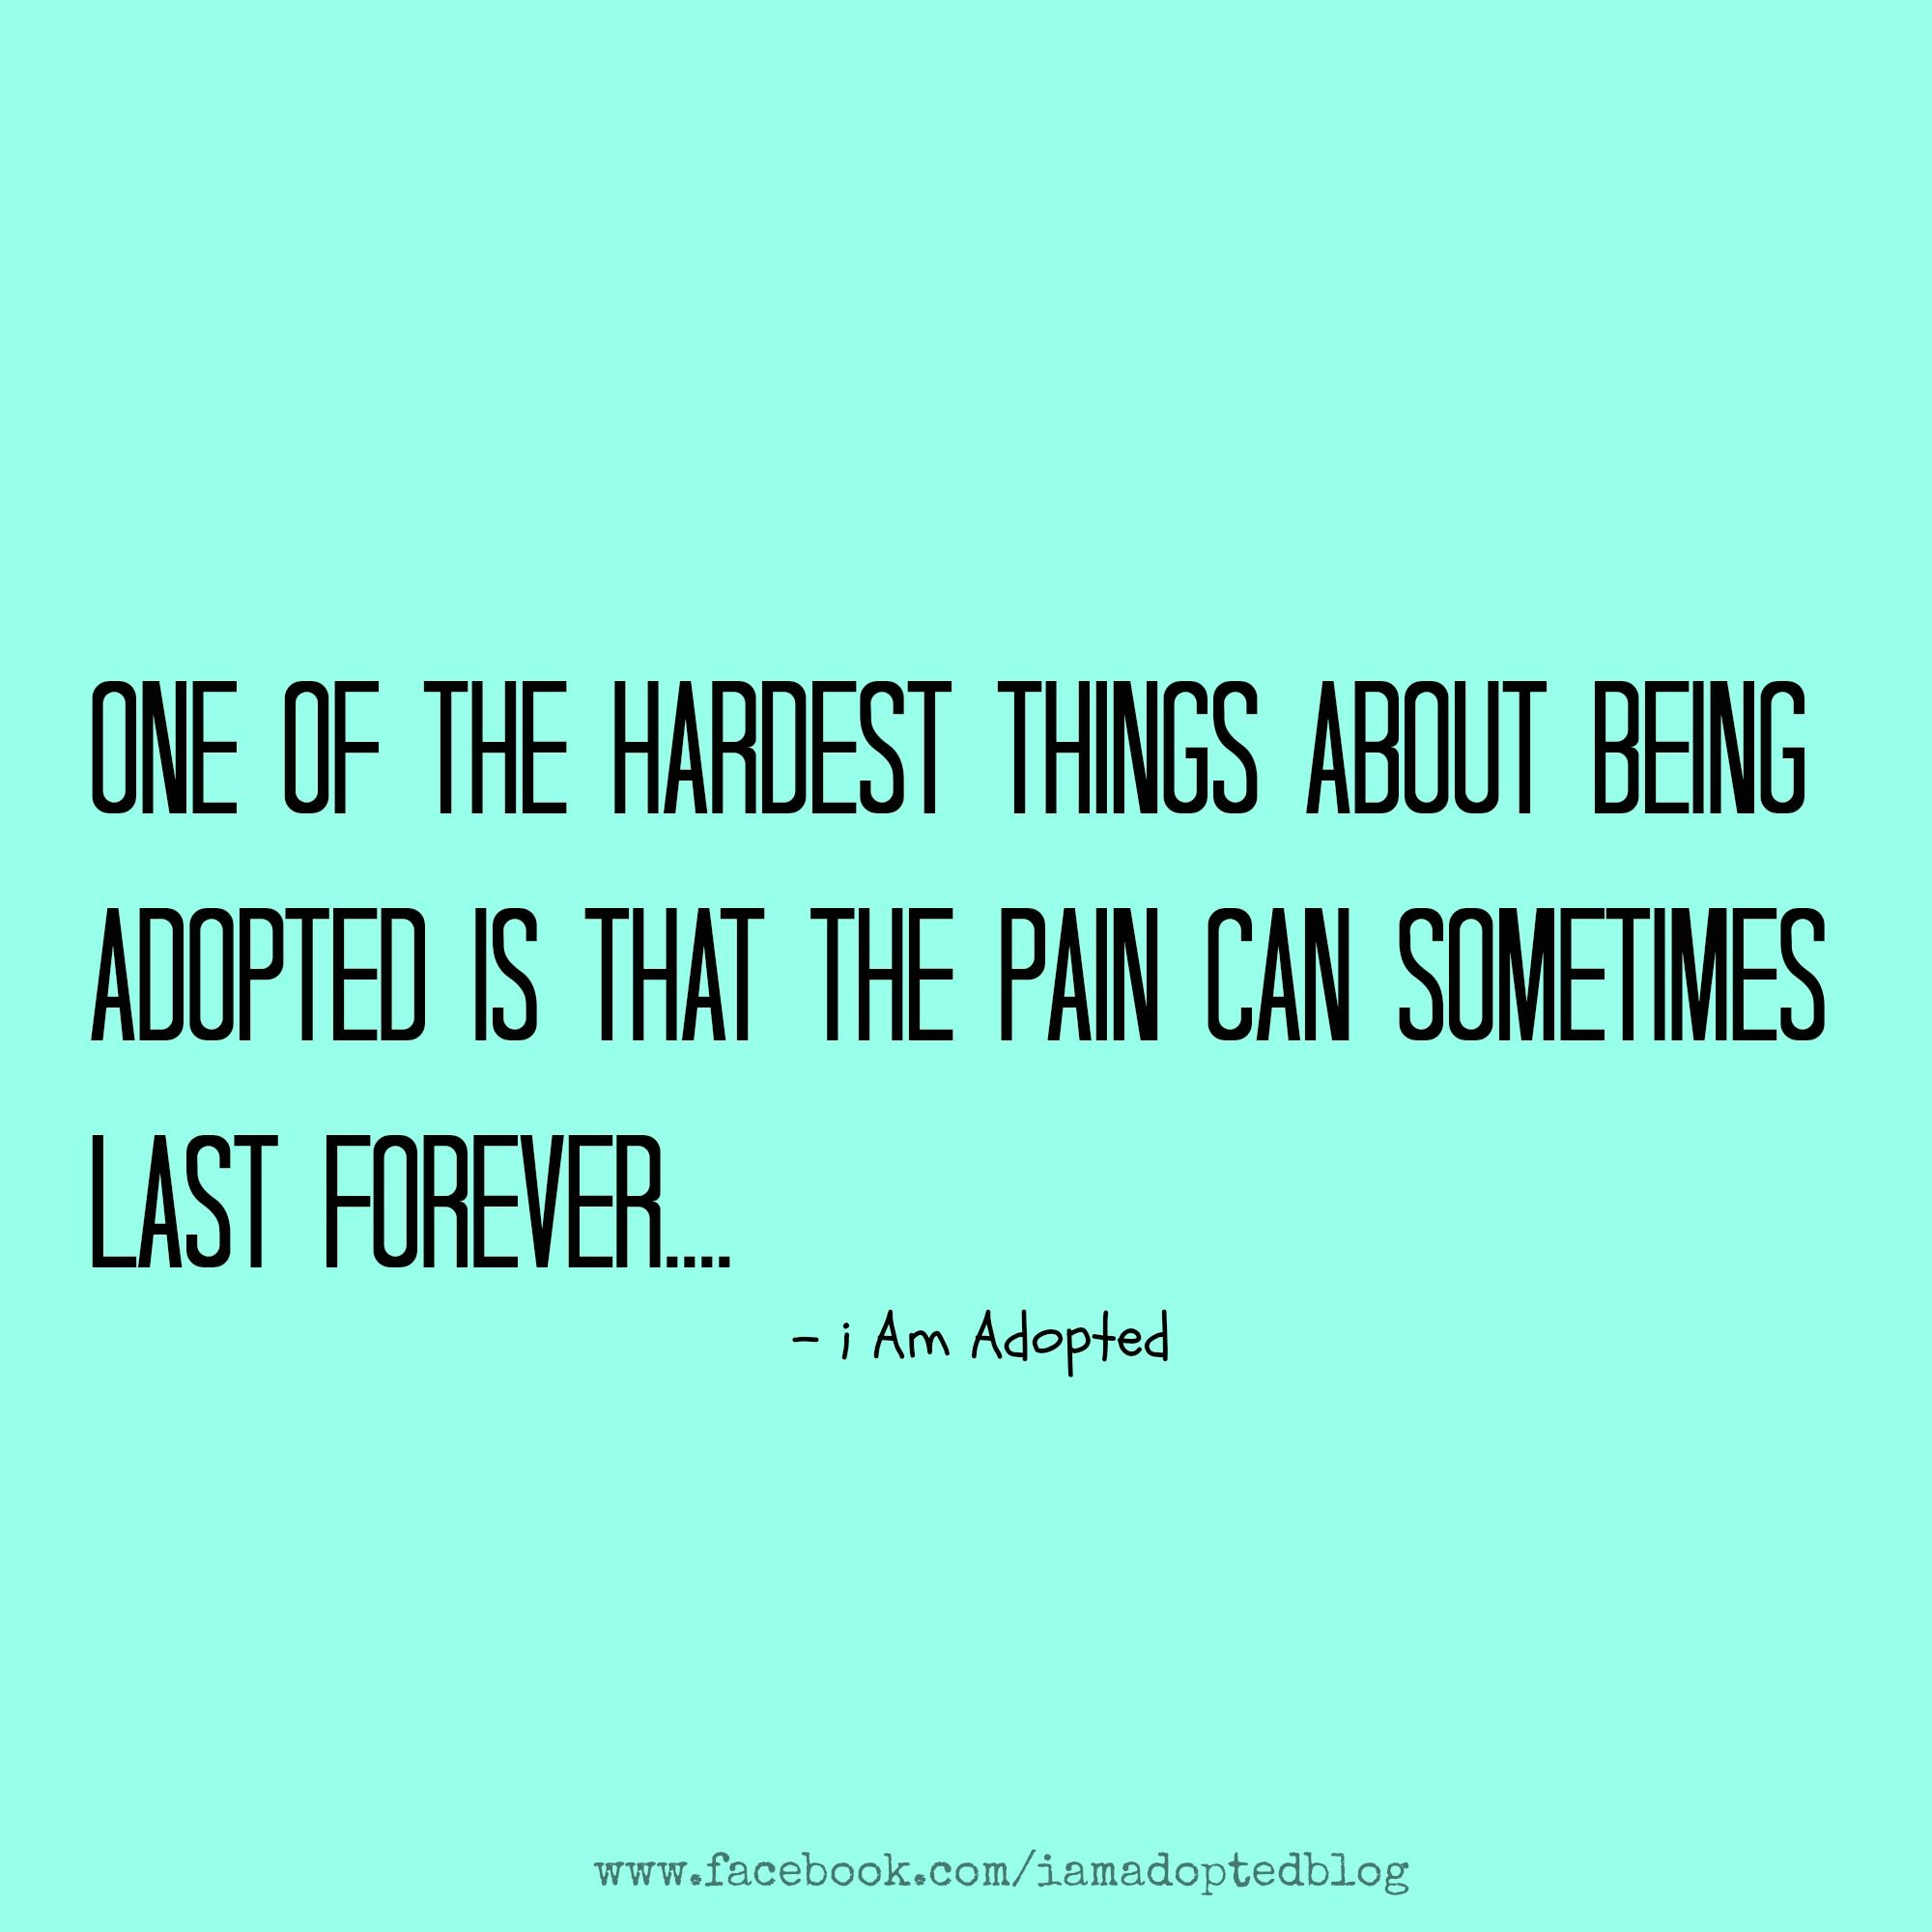 Quotes About Adoption One Of The Hardest Things About Being Adopted Is That The Pain Can